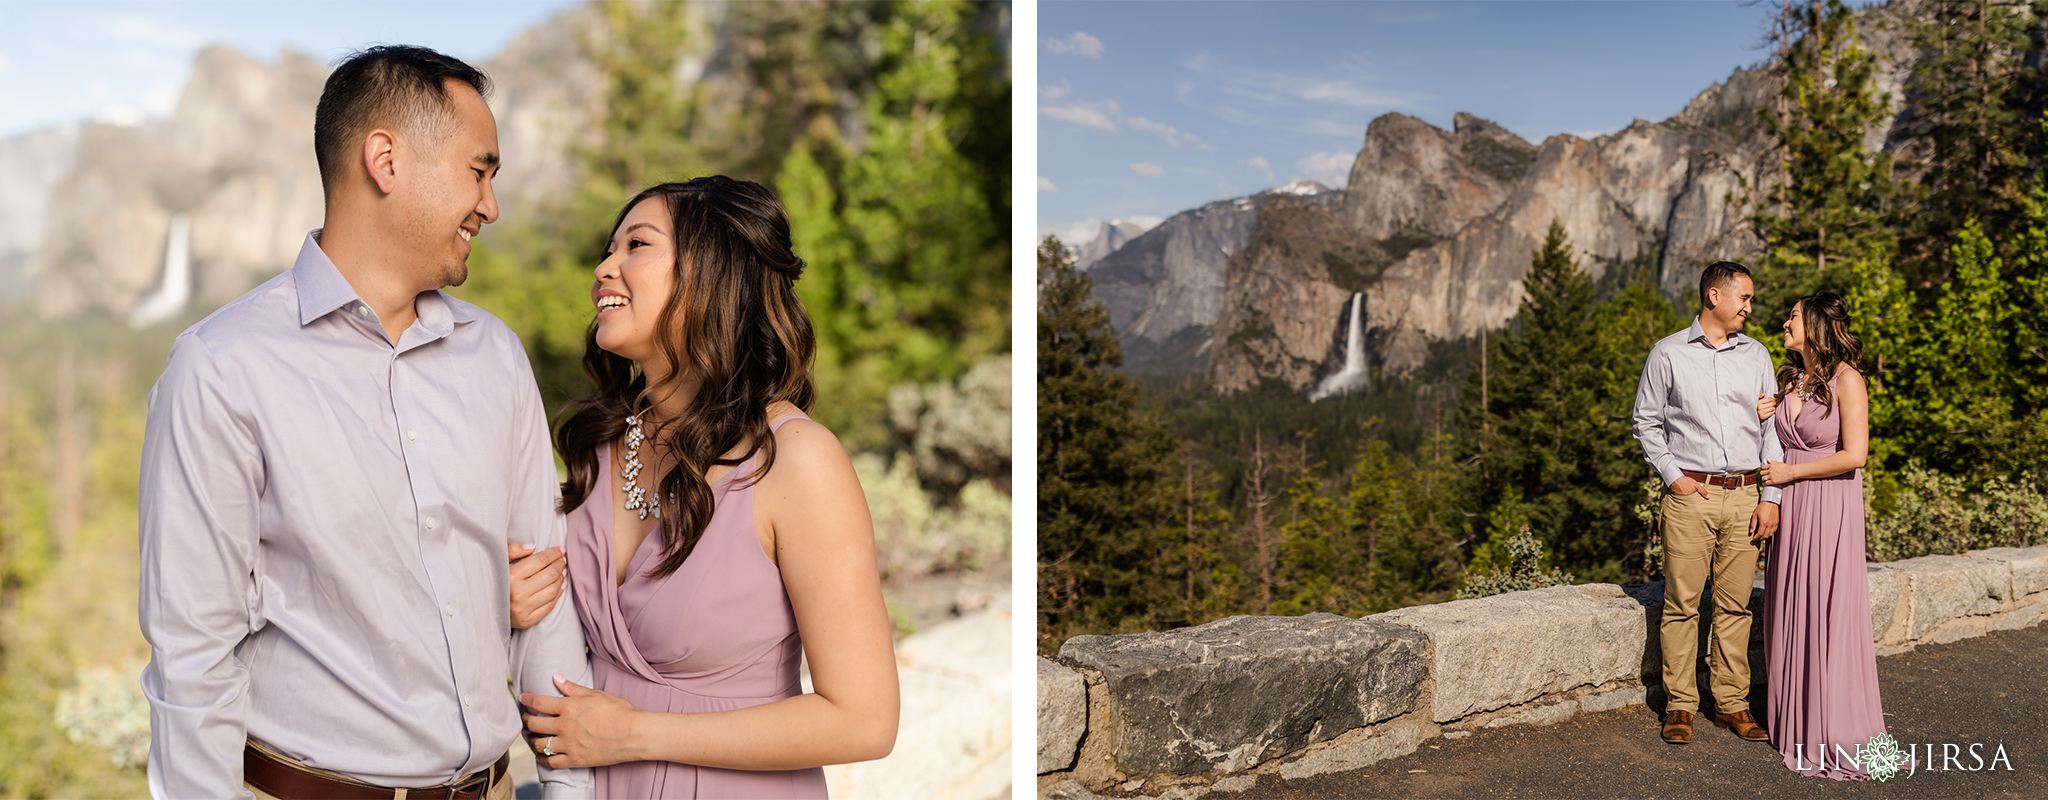 02 Yosemite National Park Travel Destination Engagement Photography